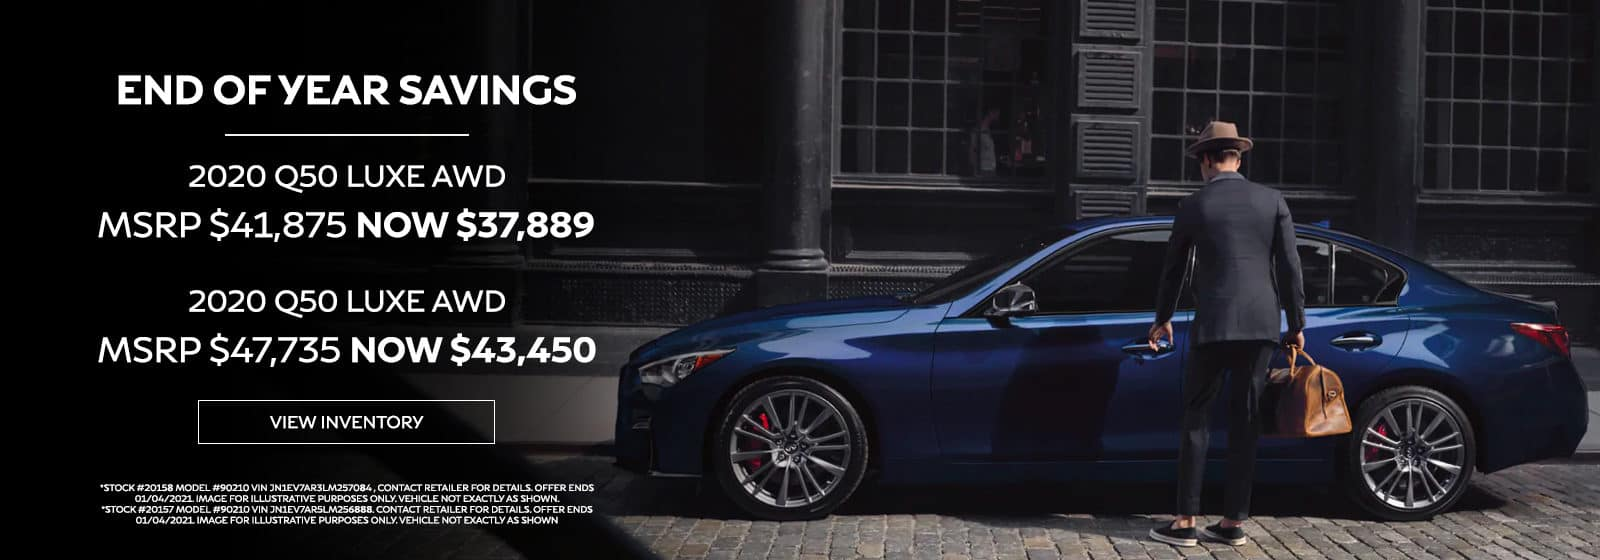 END OF YEAR SAVINGS 2020 Q50 LUXE AWD MSRP $41,875 NOW $37,889 2020 Q50 LUXE AWD MSRP $47,735 NOW $43,450